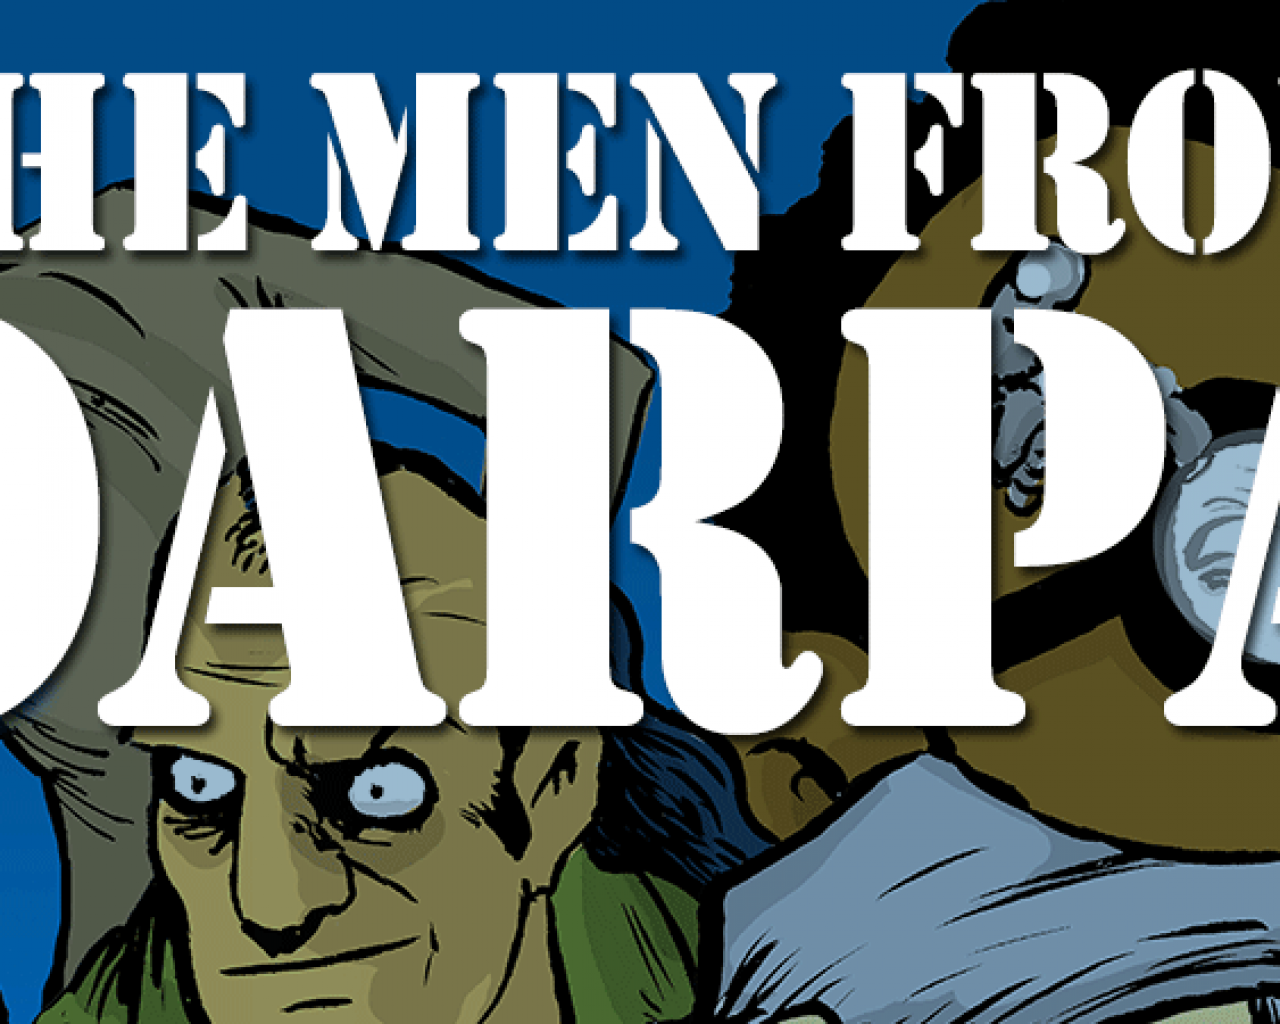 Poster Image for The Men from DARPA